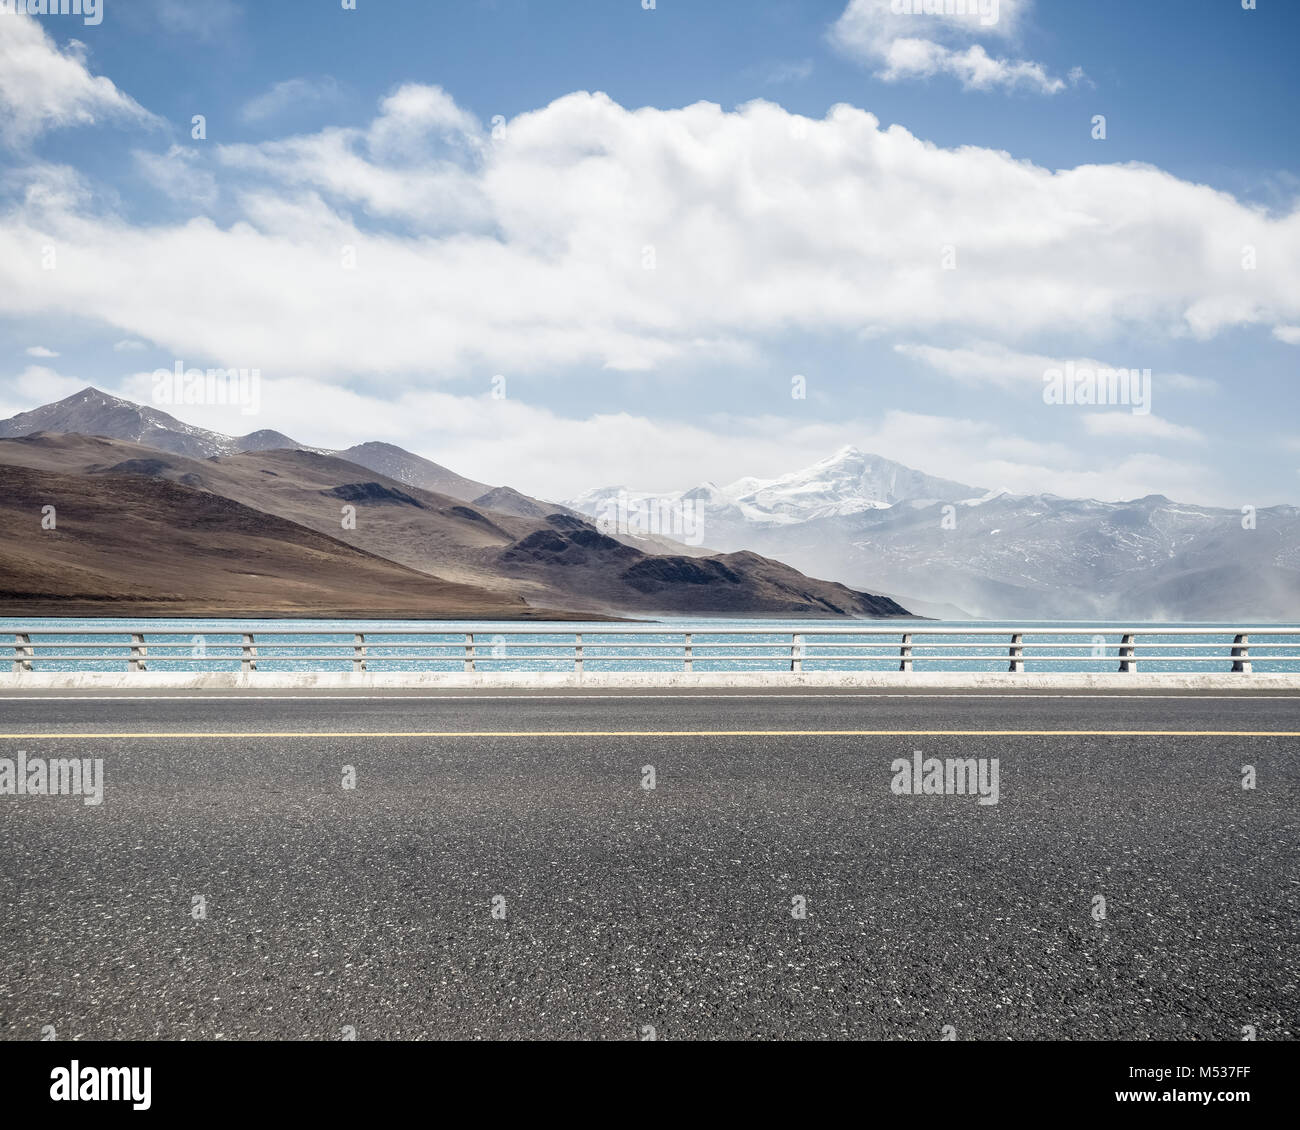 road with holy lake in tibet - Stock Image